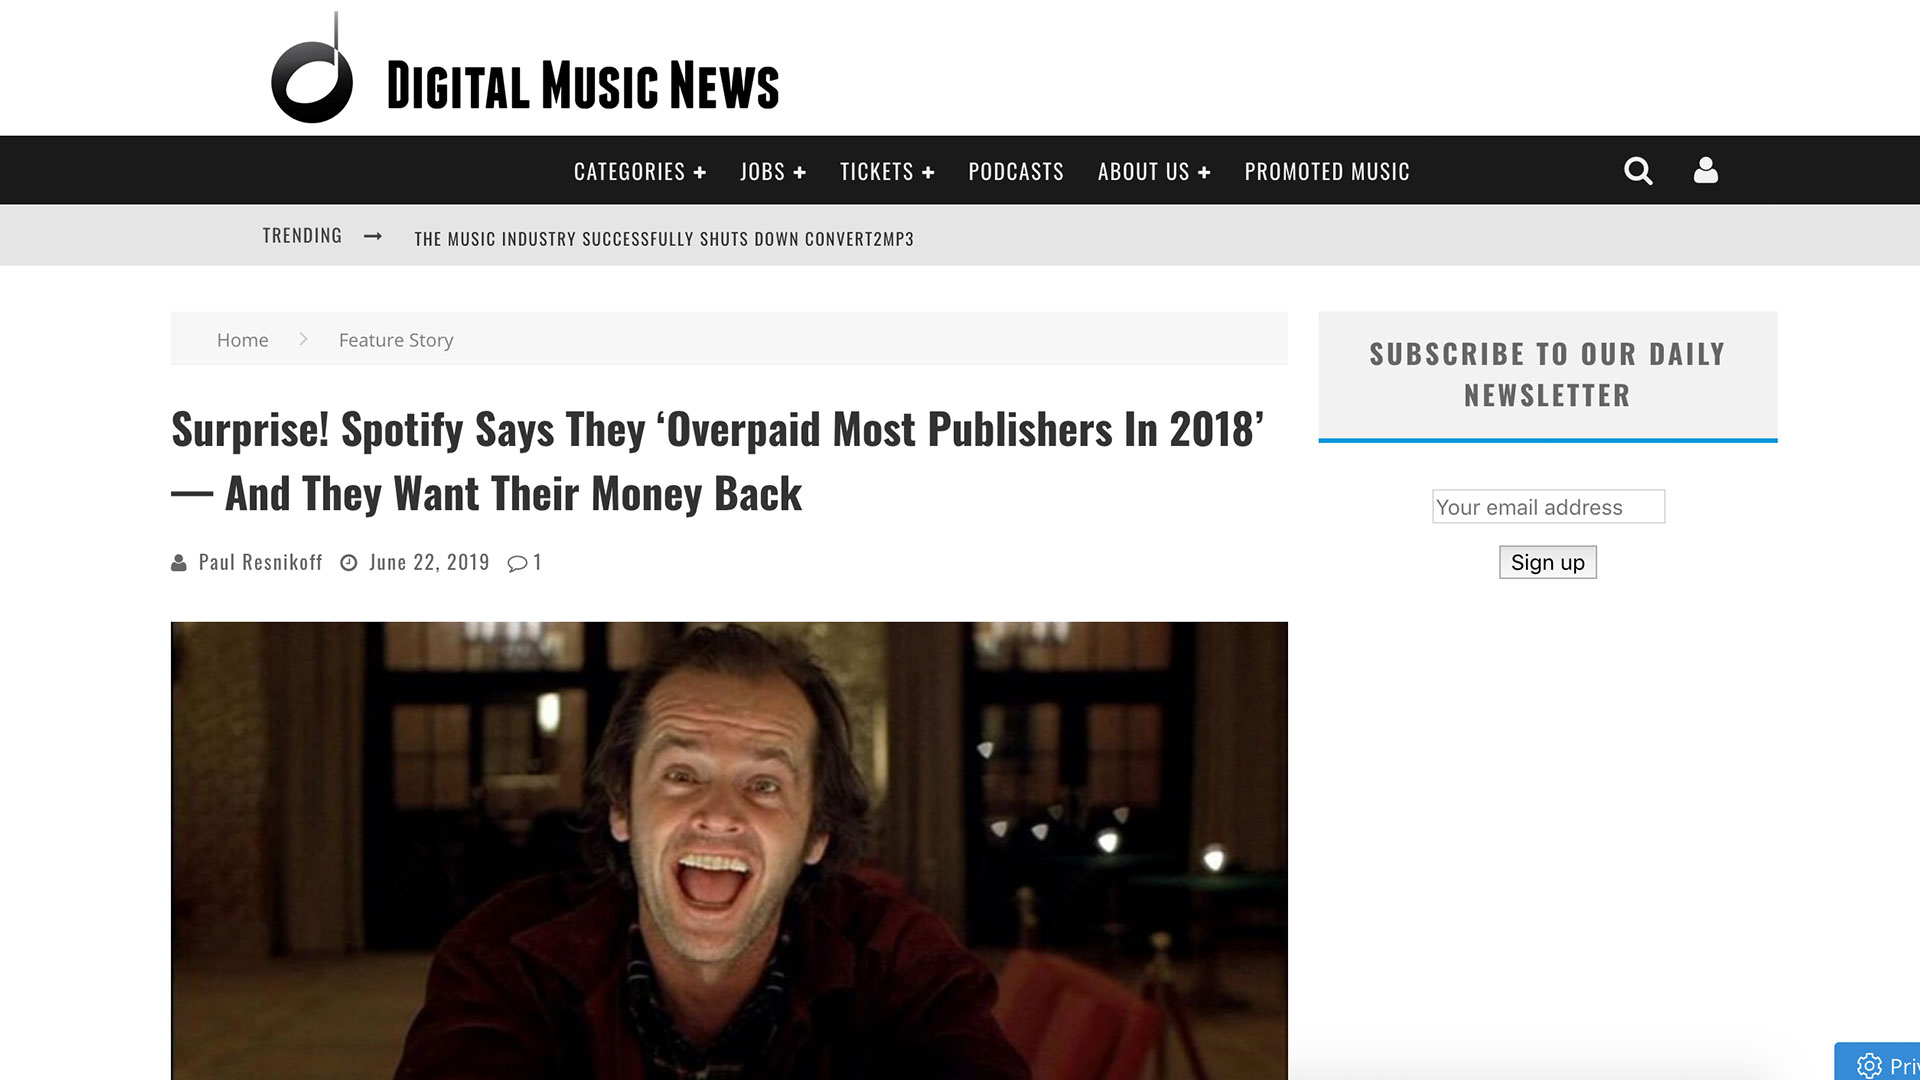 Fairness Rocks News Surprise! Spotify Says They 'Overpaid Most Publishers In 2018' — And They Want Their Money Back